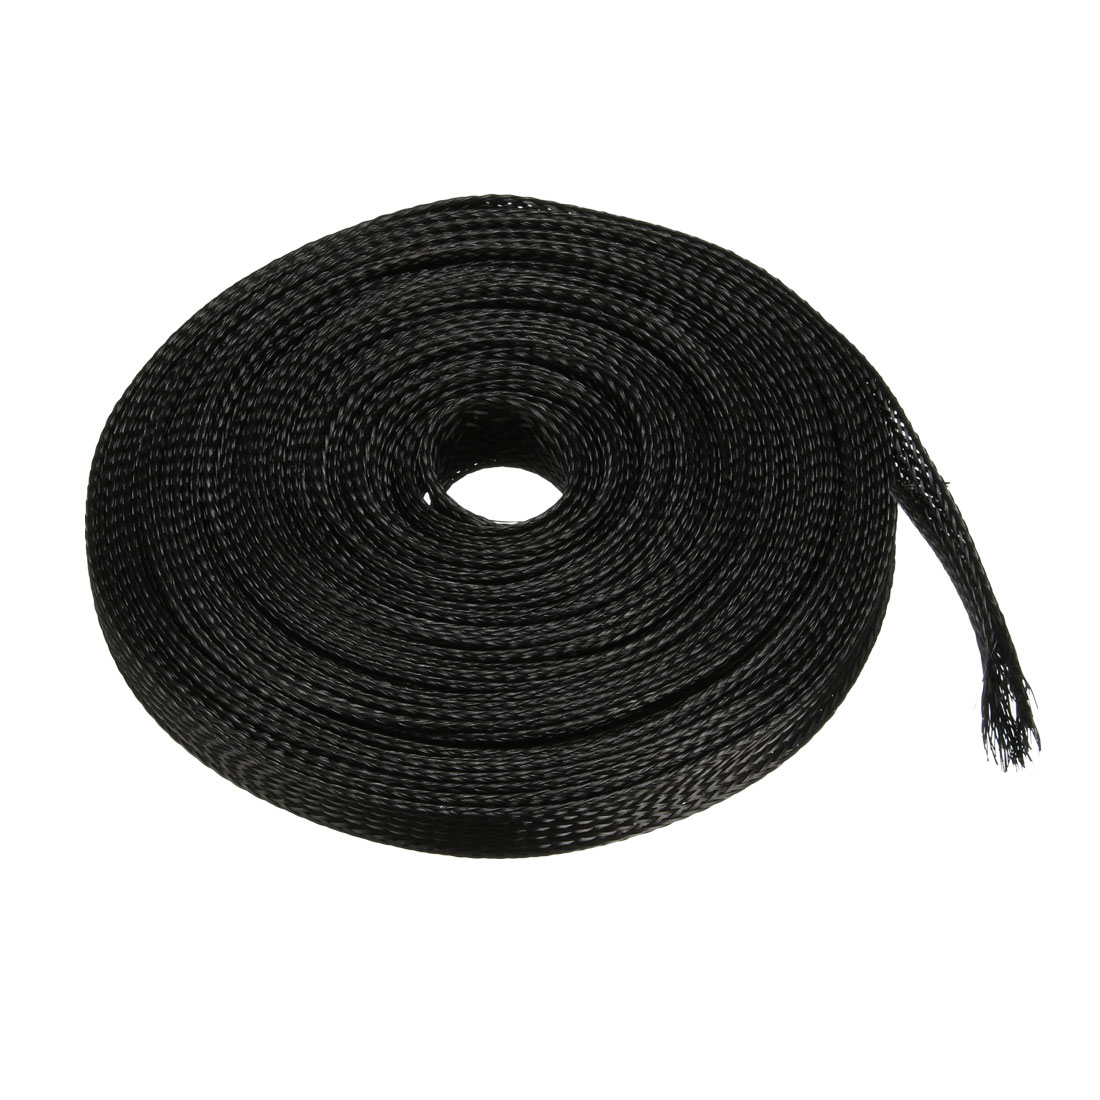 10mm Flat Dia Tight Braided PET Expandable Sleeving Cable Wrap Sheath Black 10M